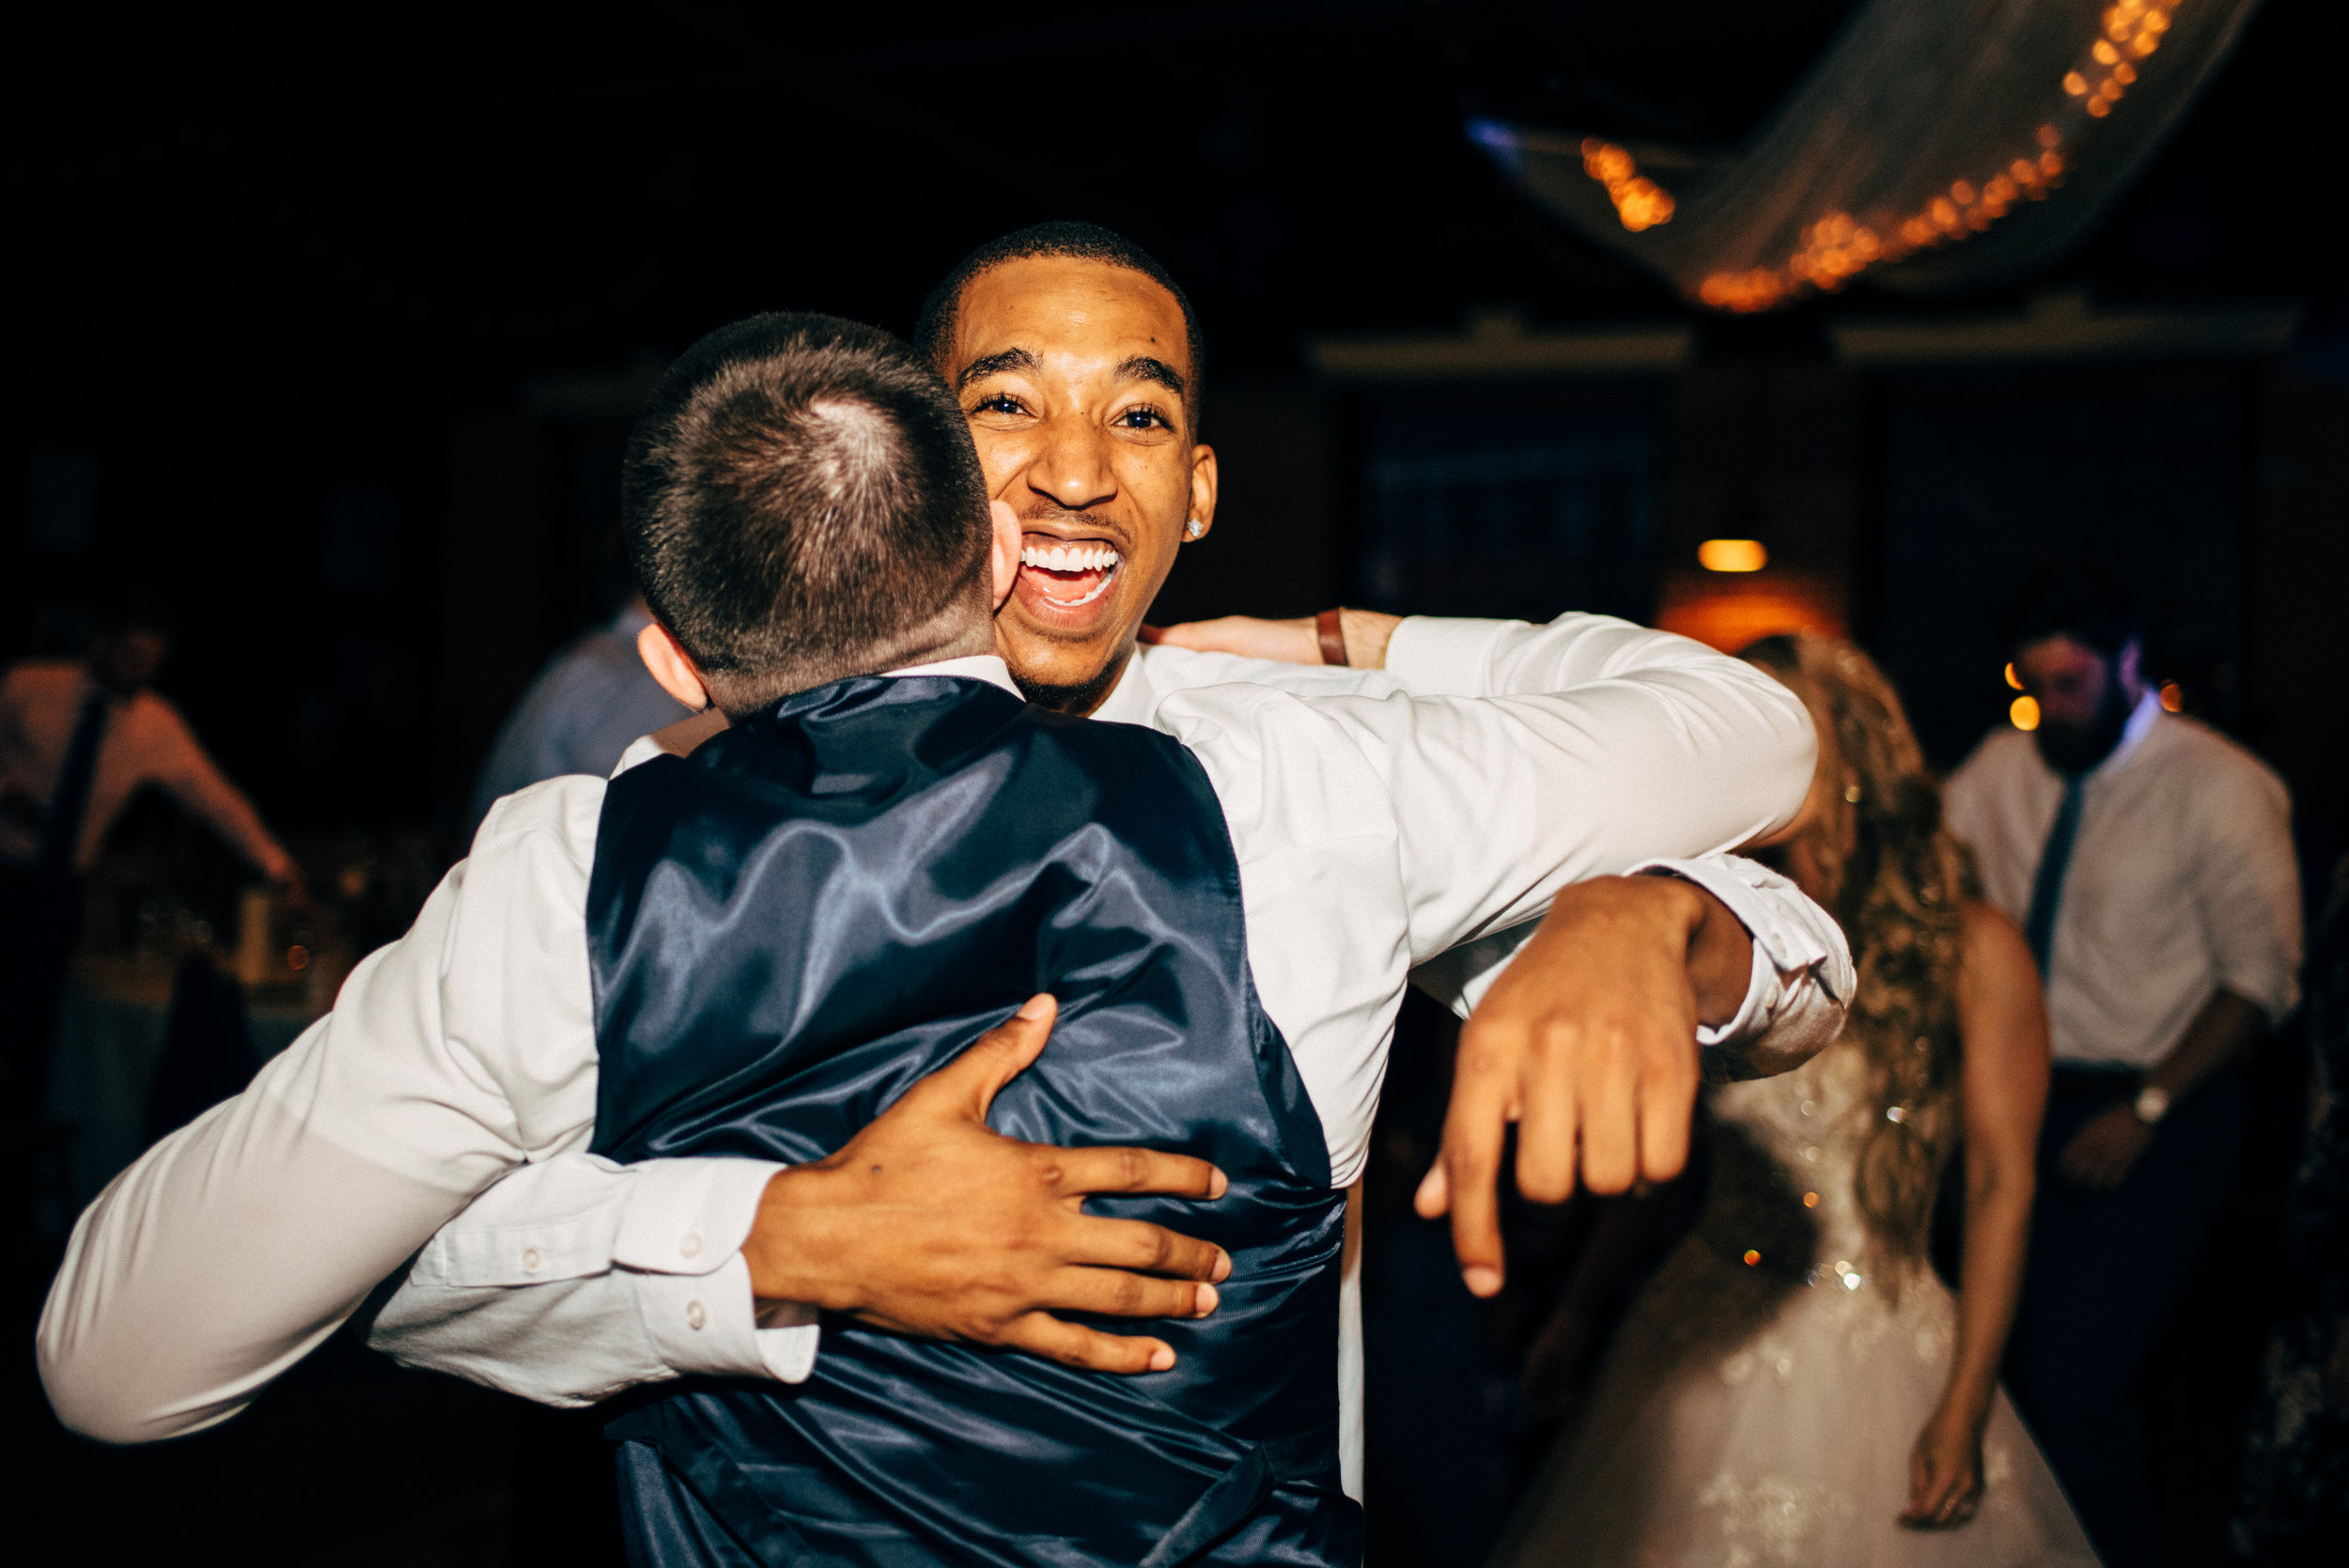 groom hugging his friend during wedding reception at the Inn at the Old Silk Mill